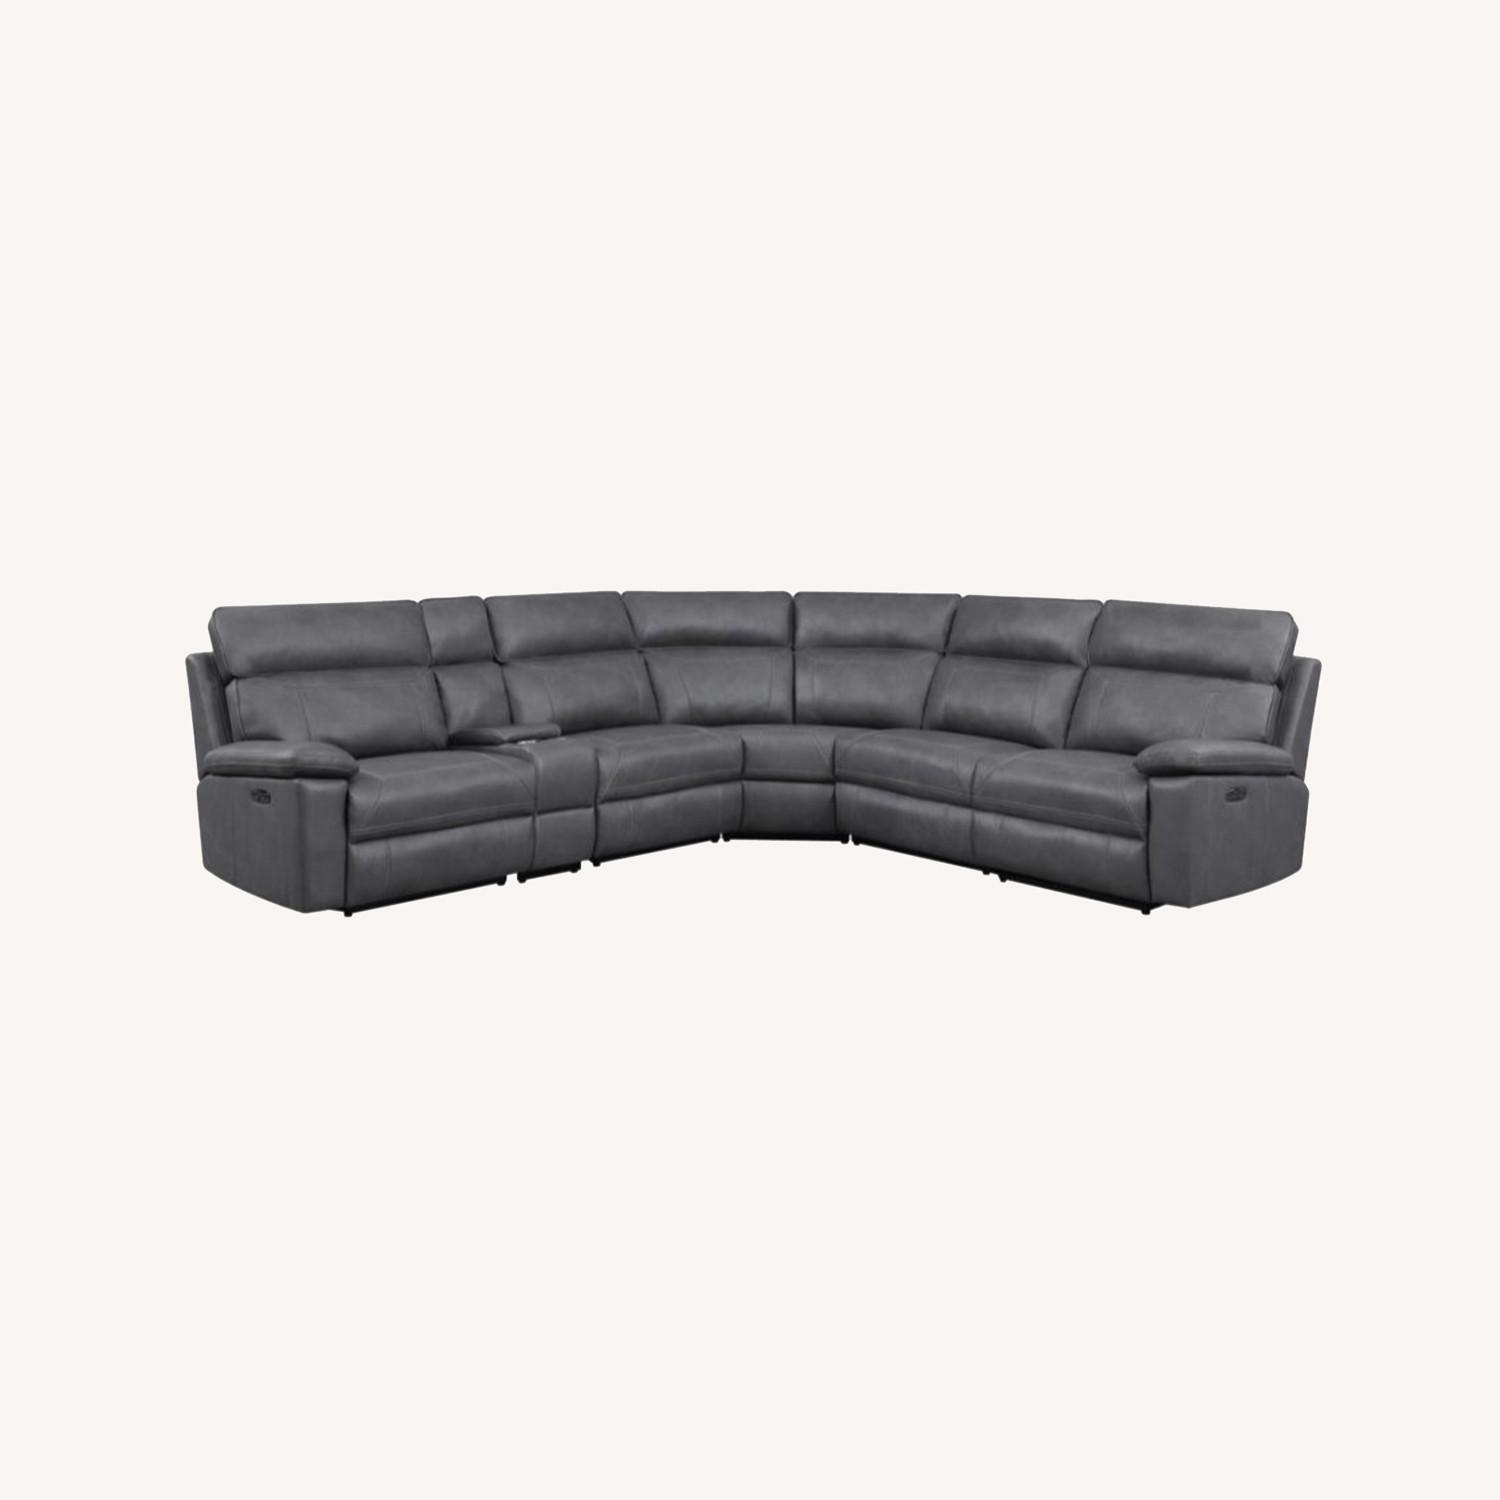 6-Piece Power2 Sectional In Grey Leatherette - image-11